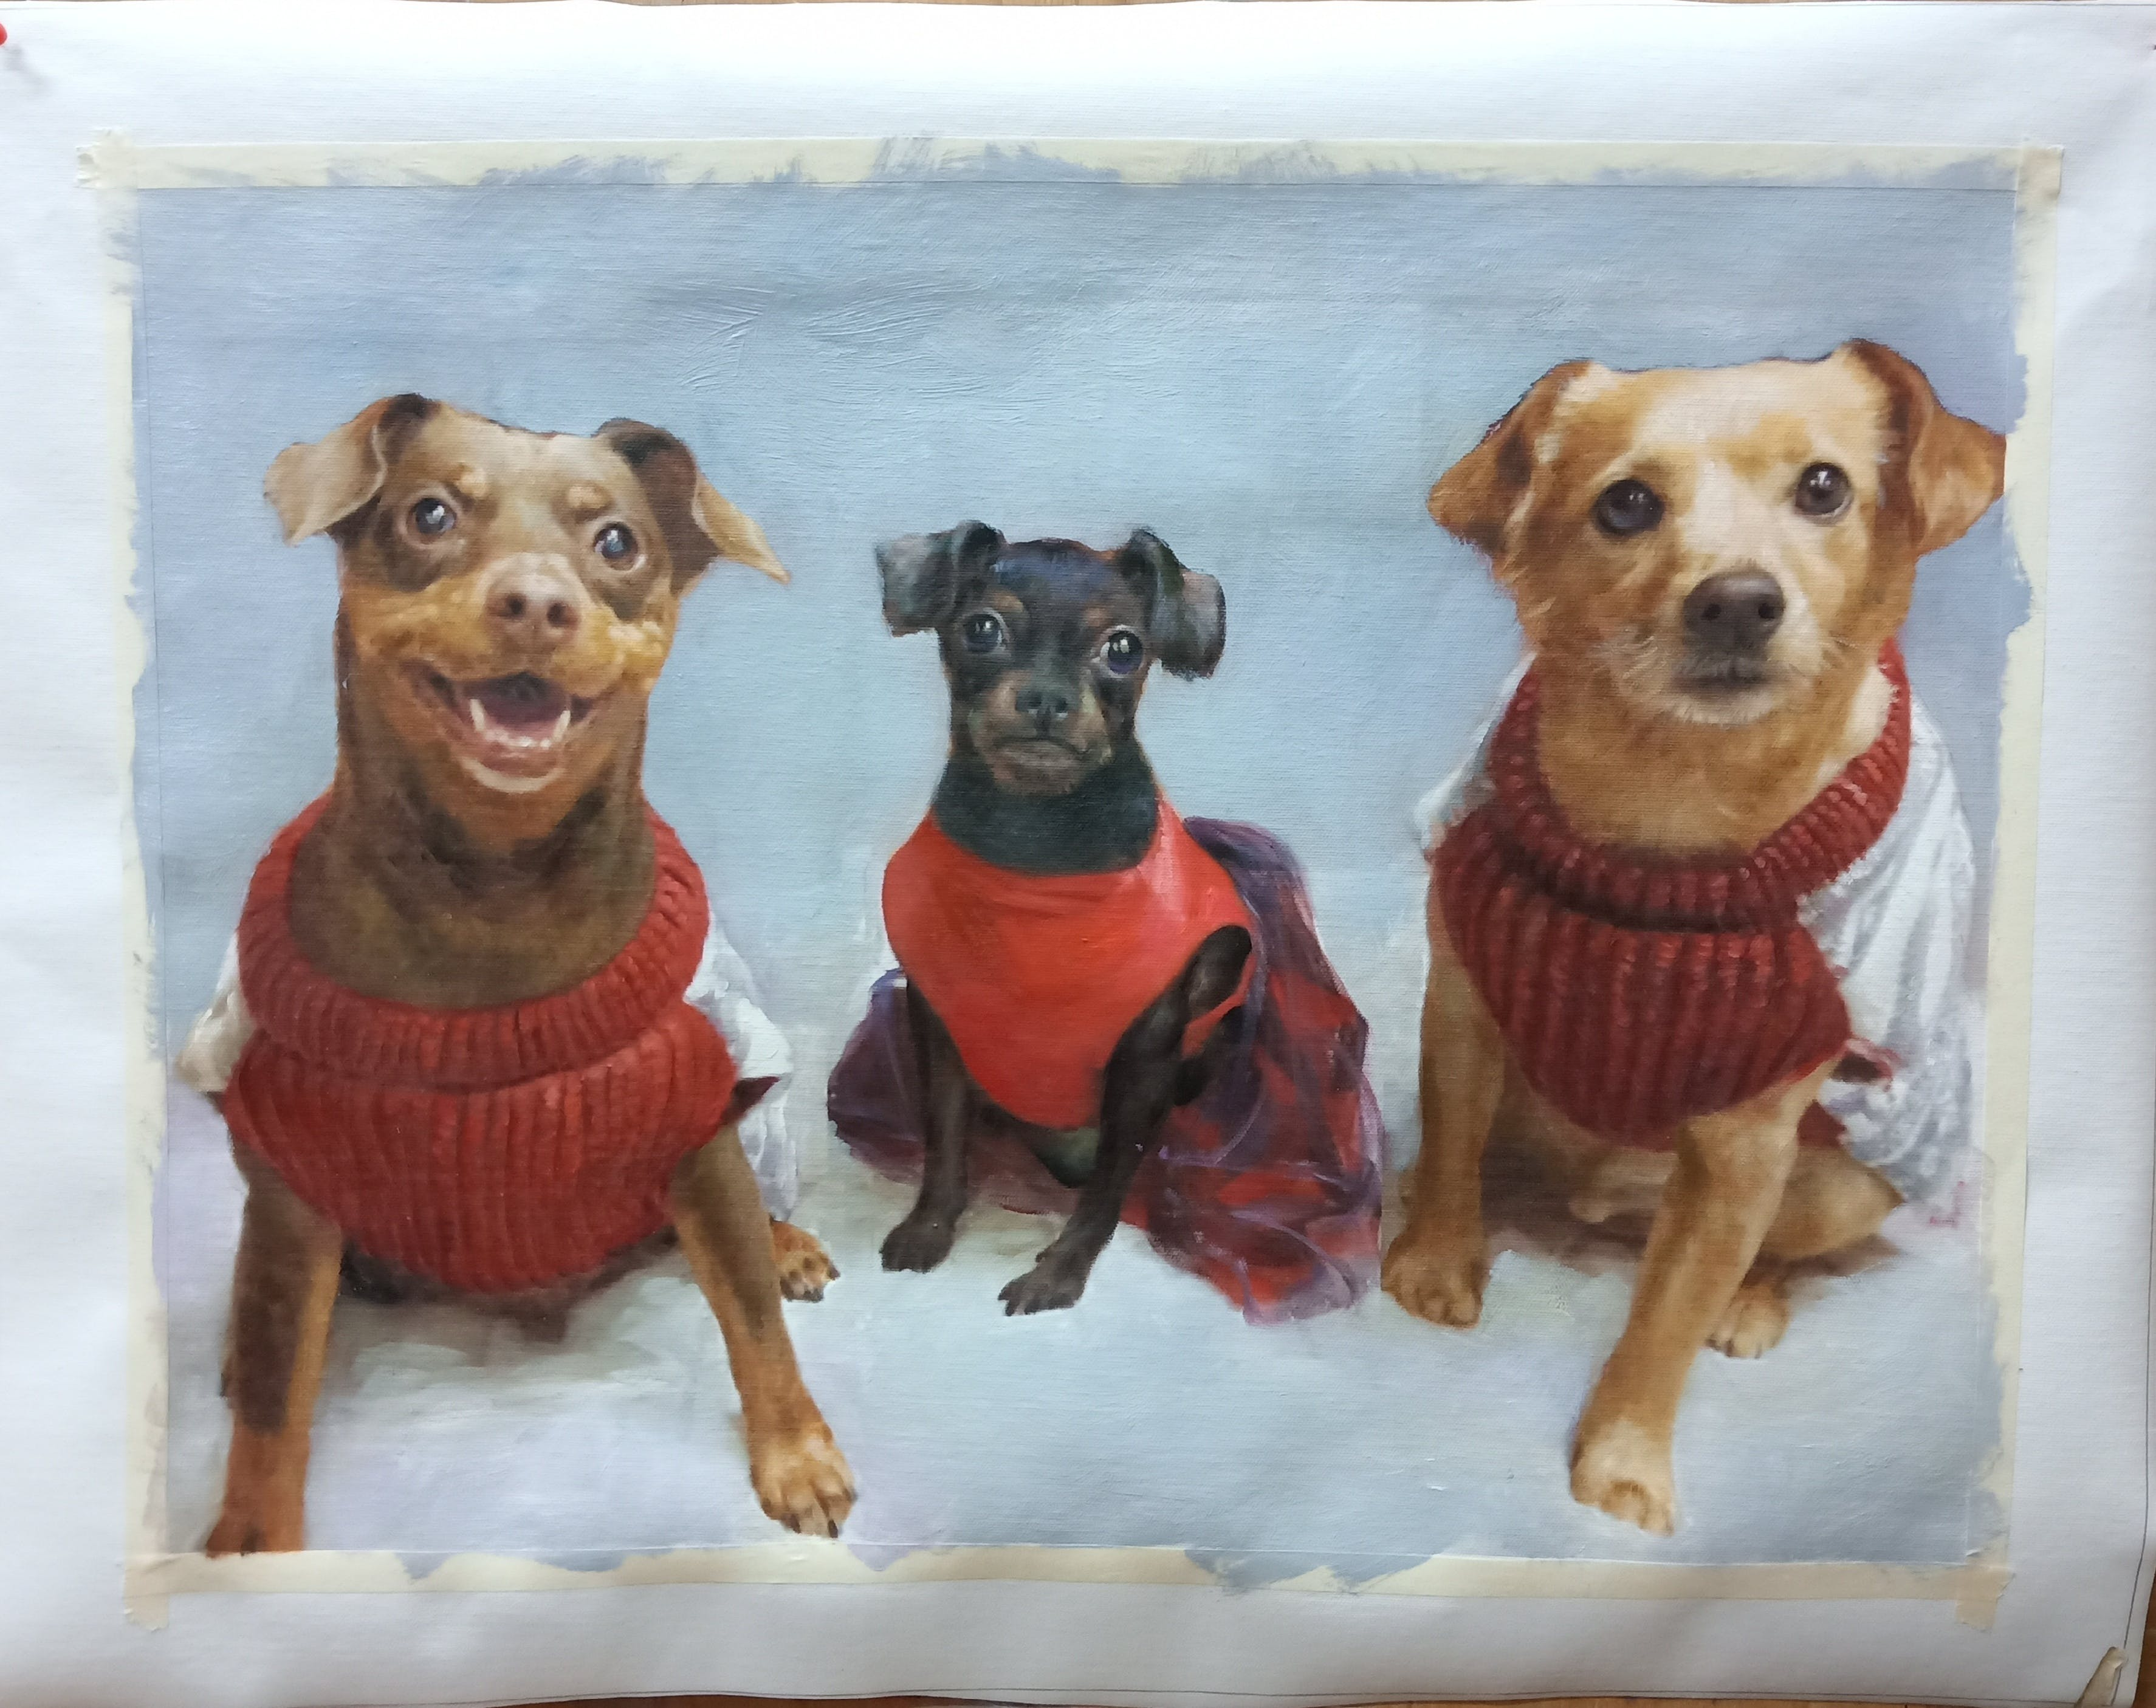 a painted portrait of 3 dogs wearing sweaters